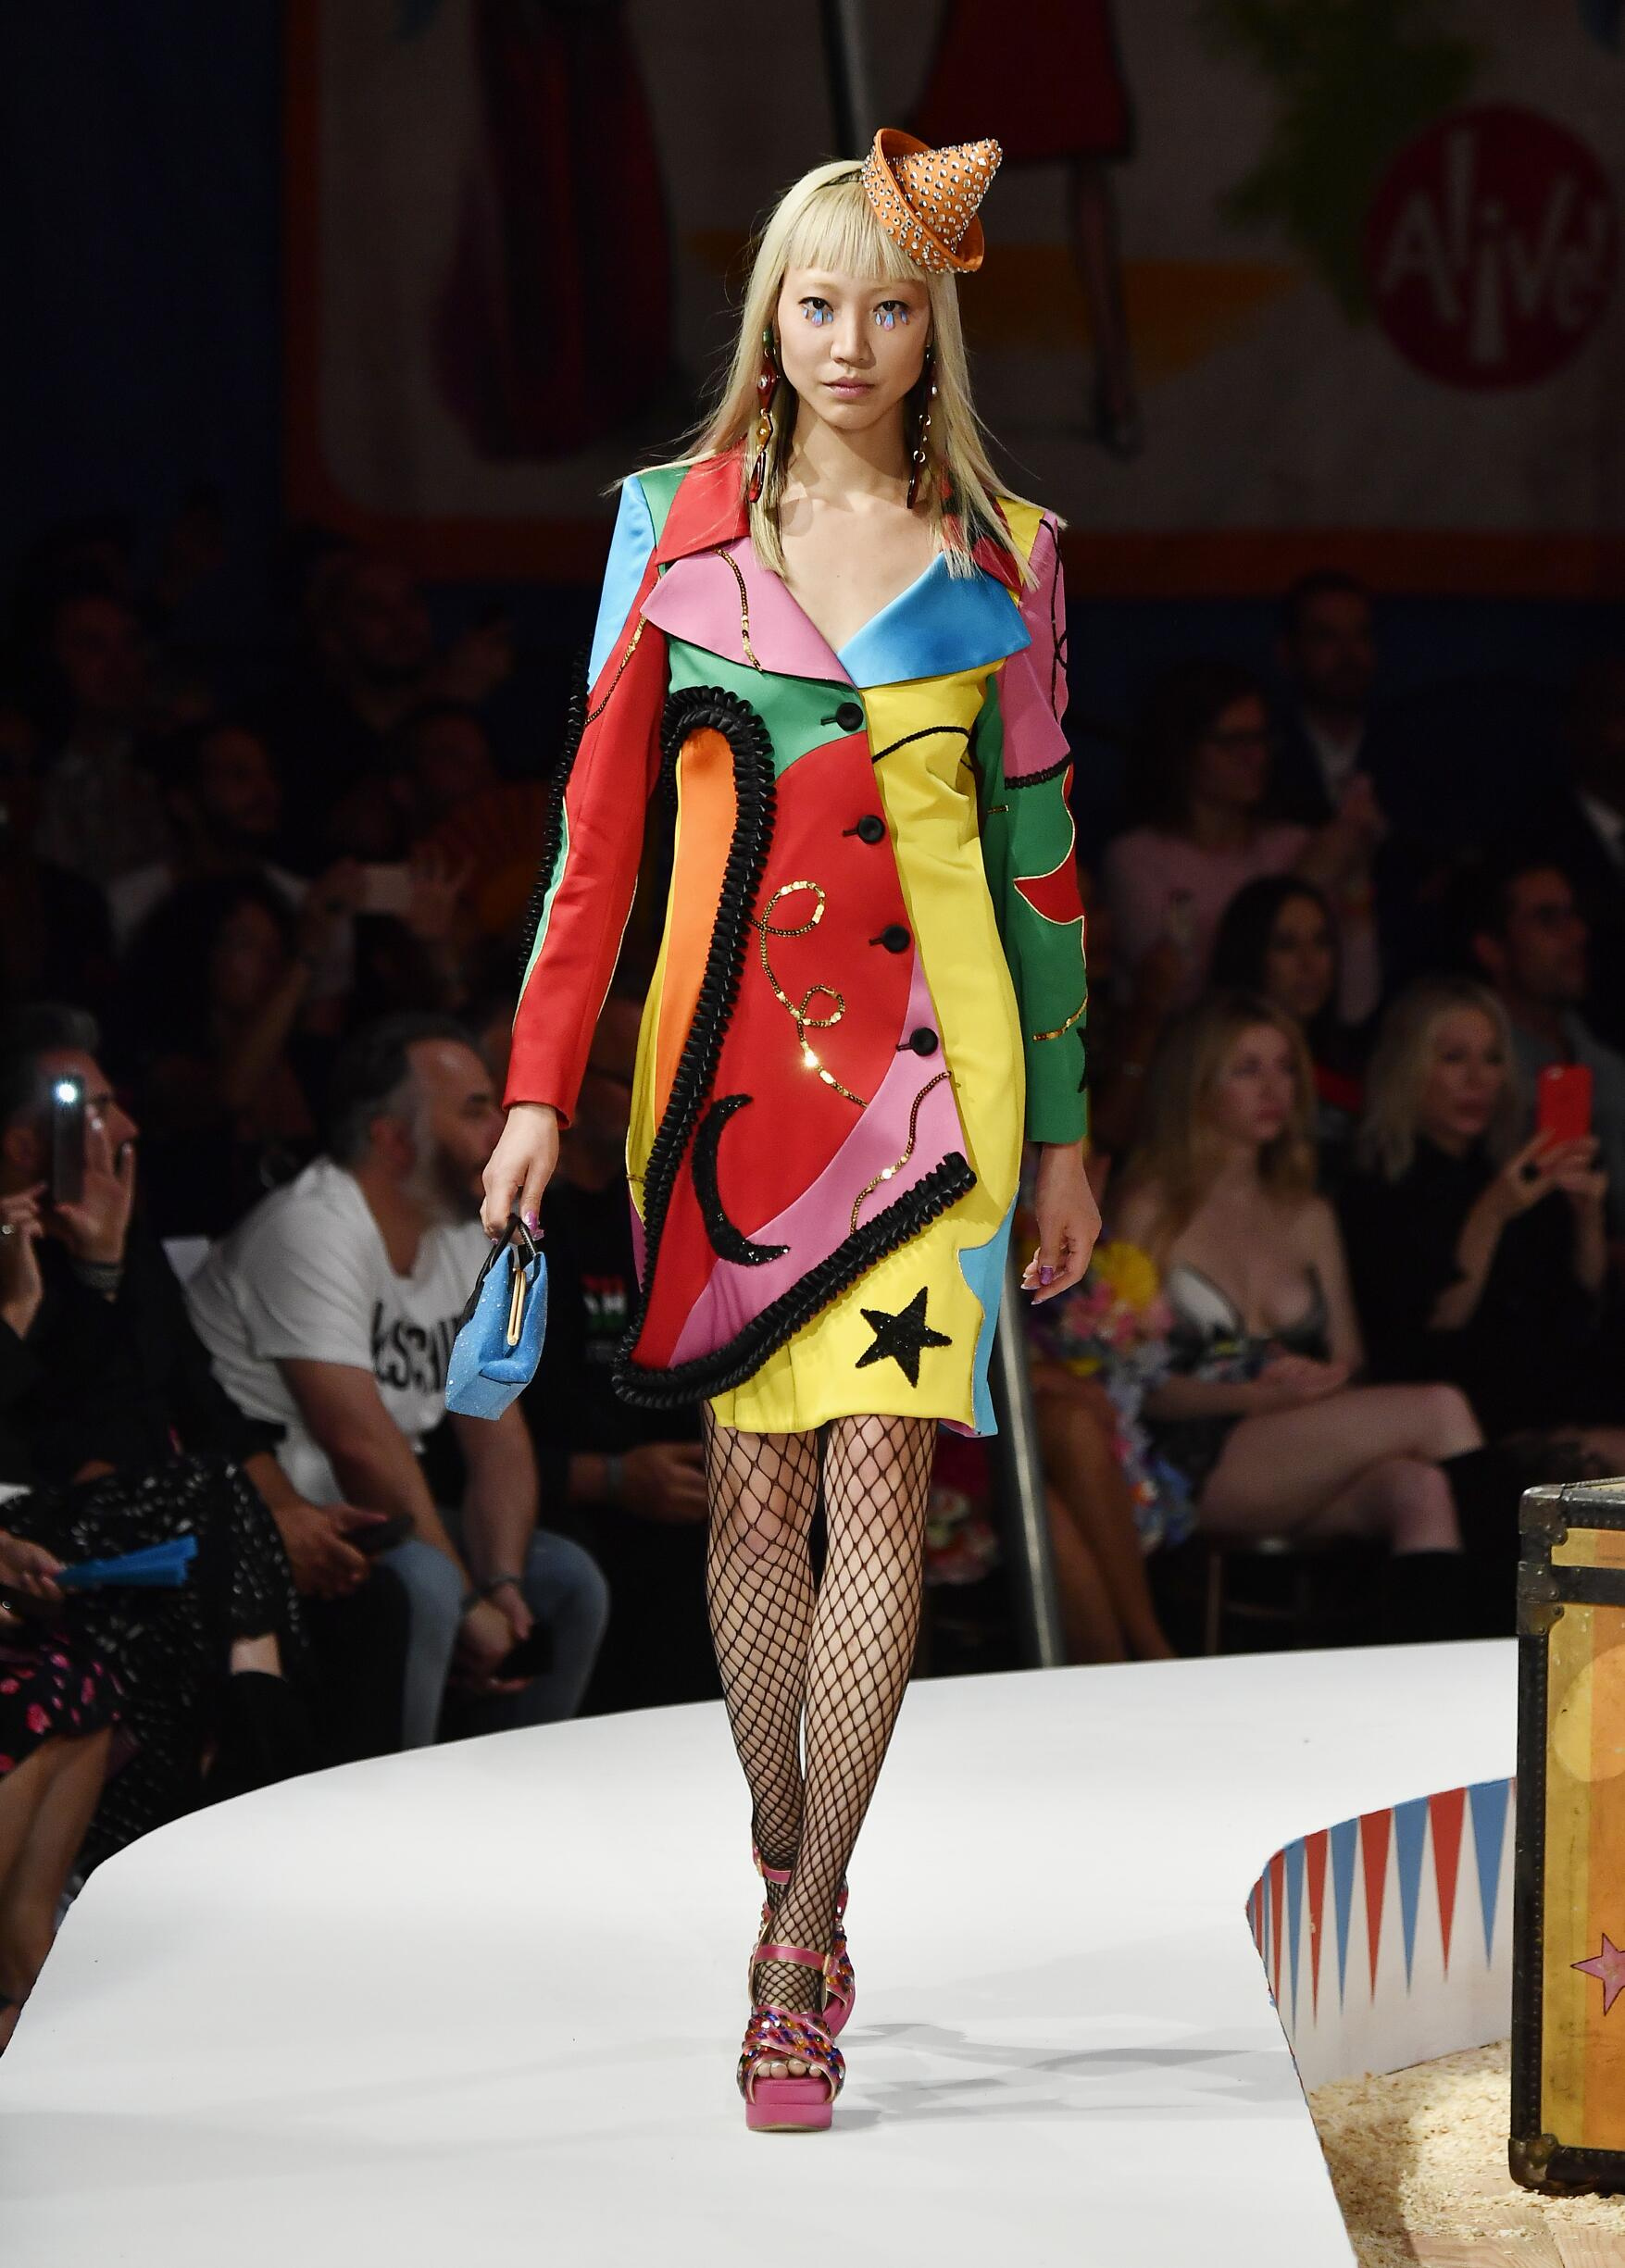 Moschino Spring Summer 2019 Menswear and Women's Resort Collection Look 36 Los Angeles